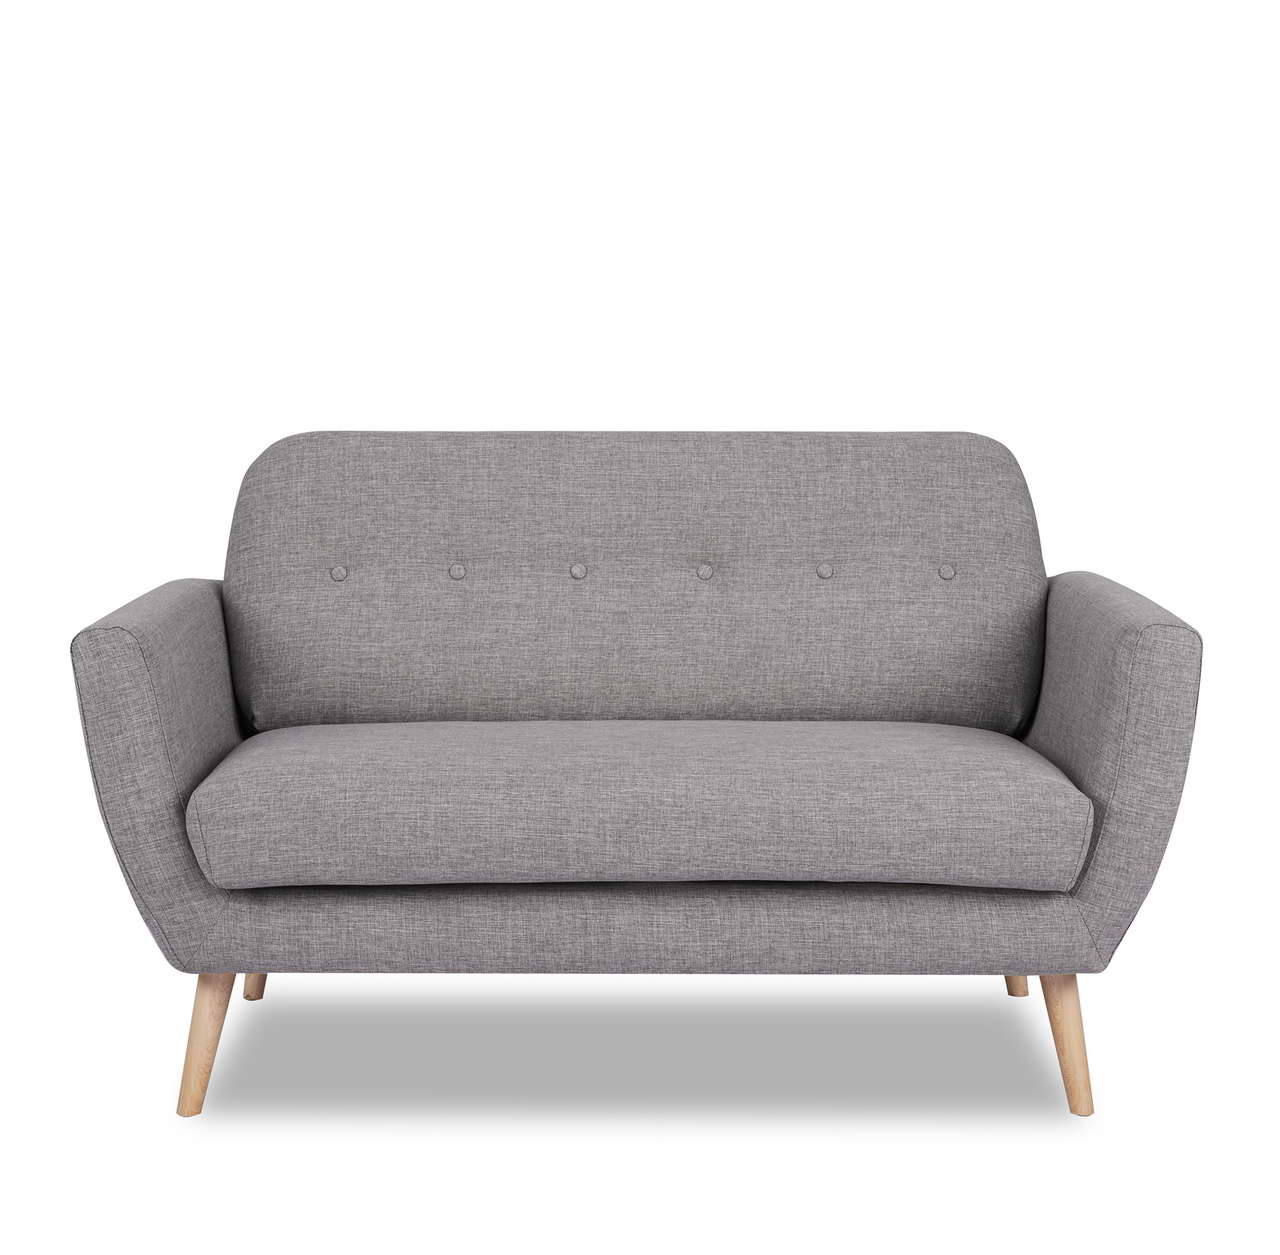 Groovy Moderno 2 Seater Sofa Caraccident5 Cool Chair Designs And Ideas Caraccident5Info